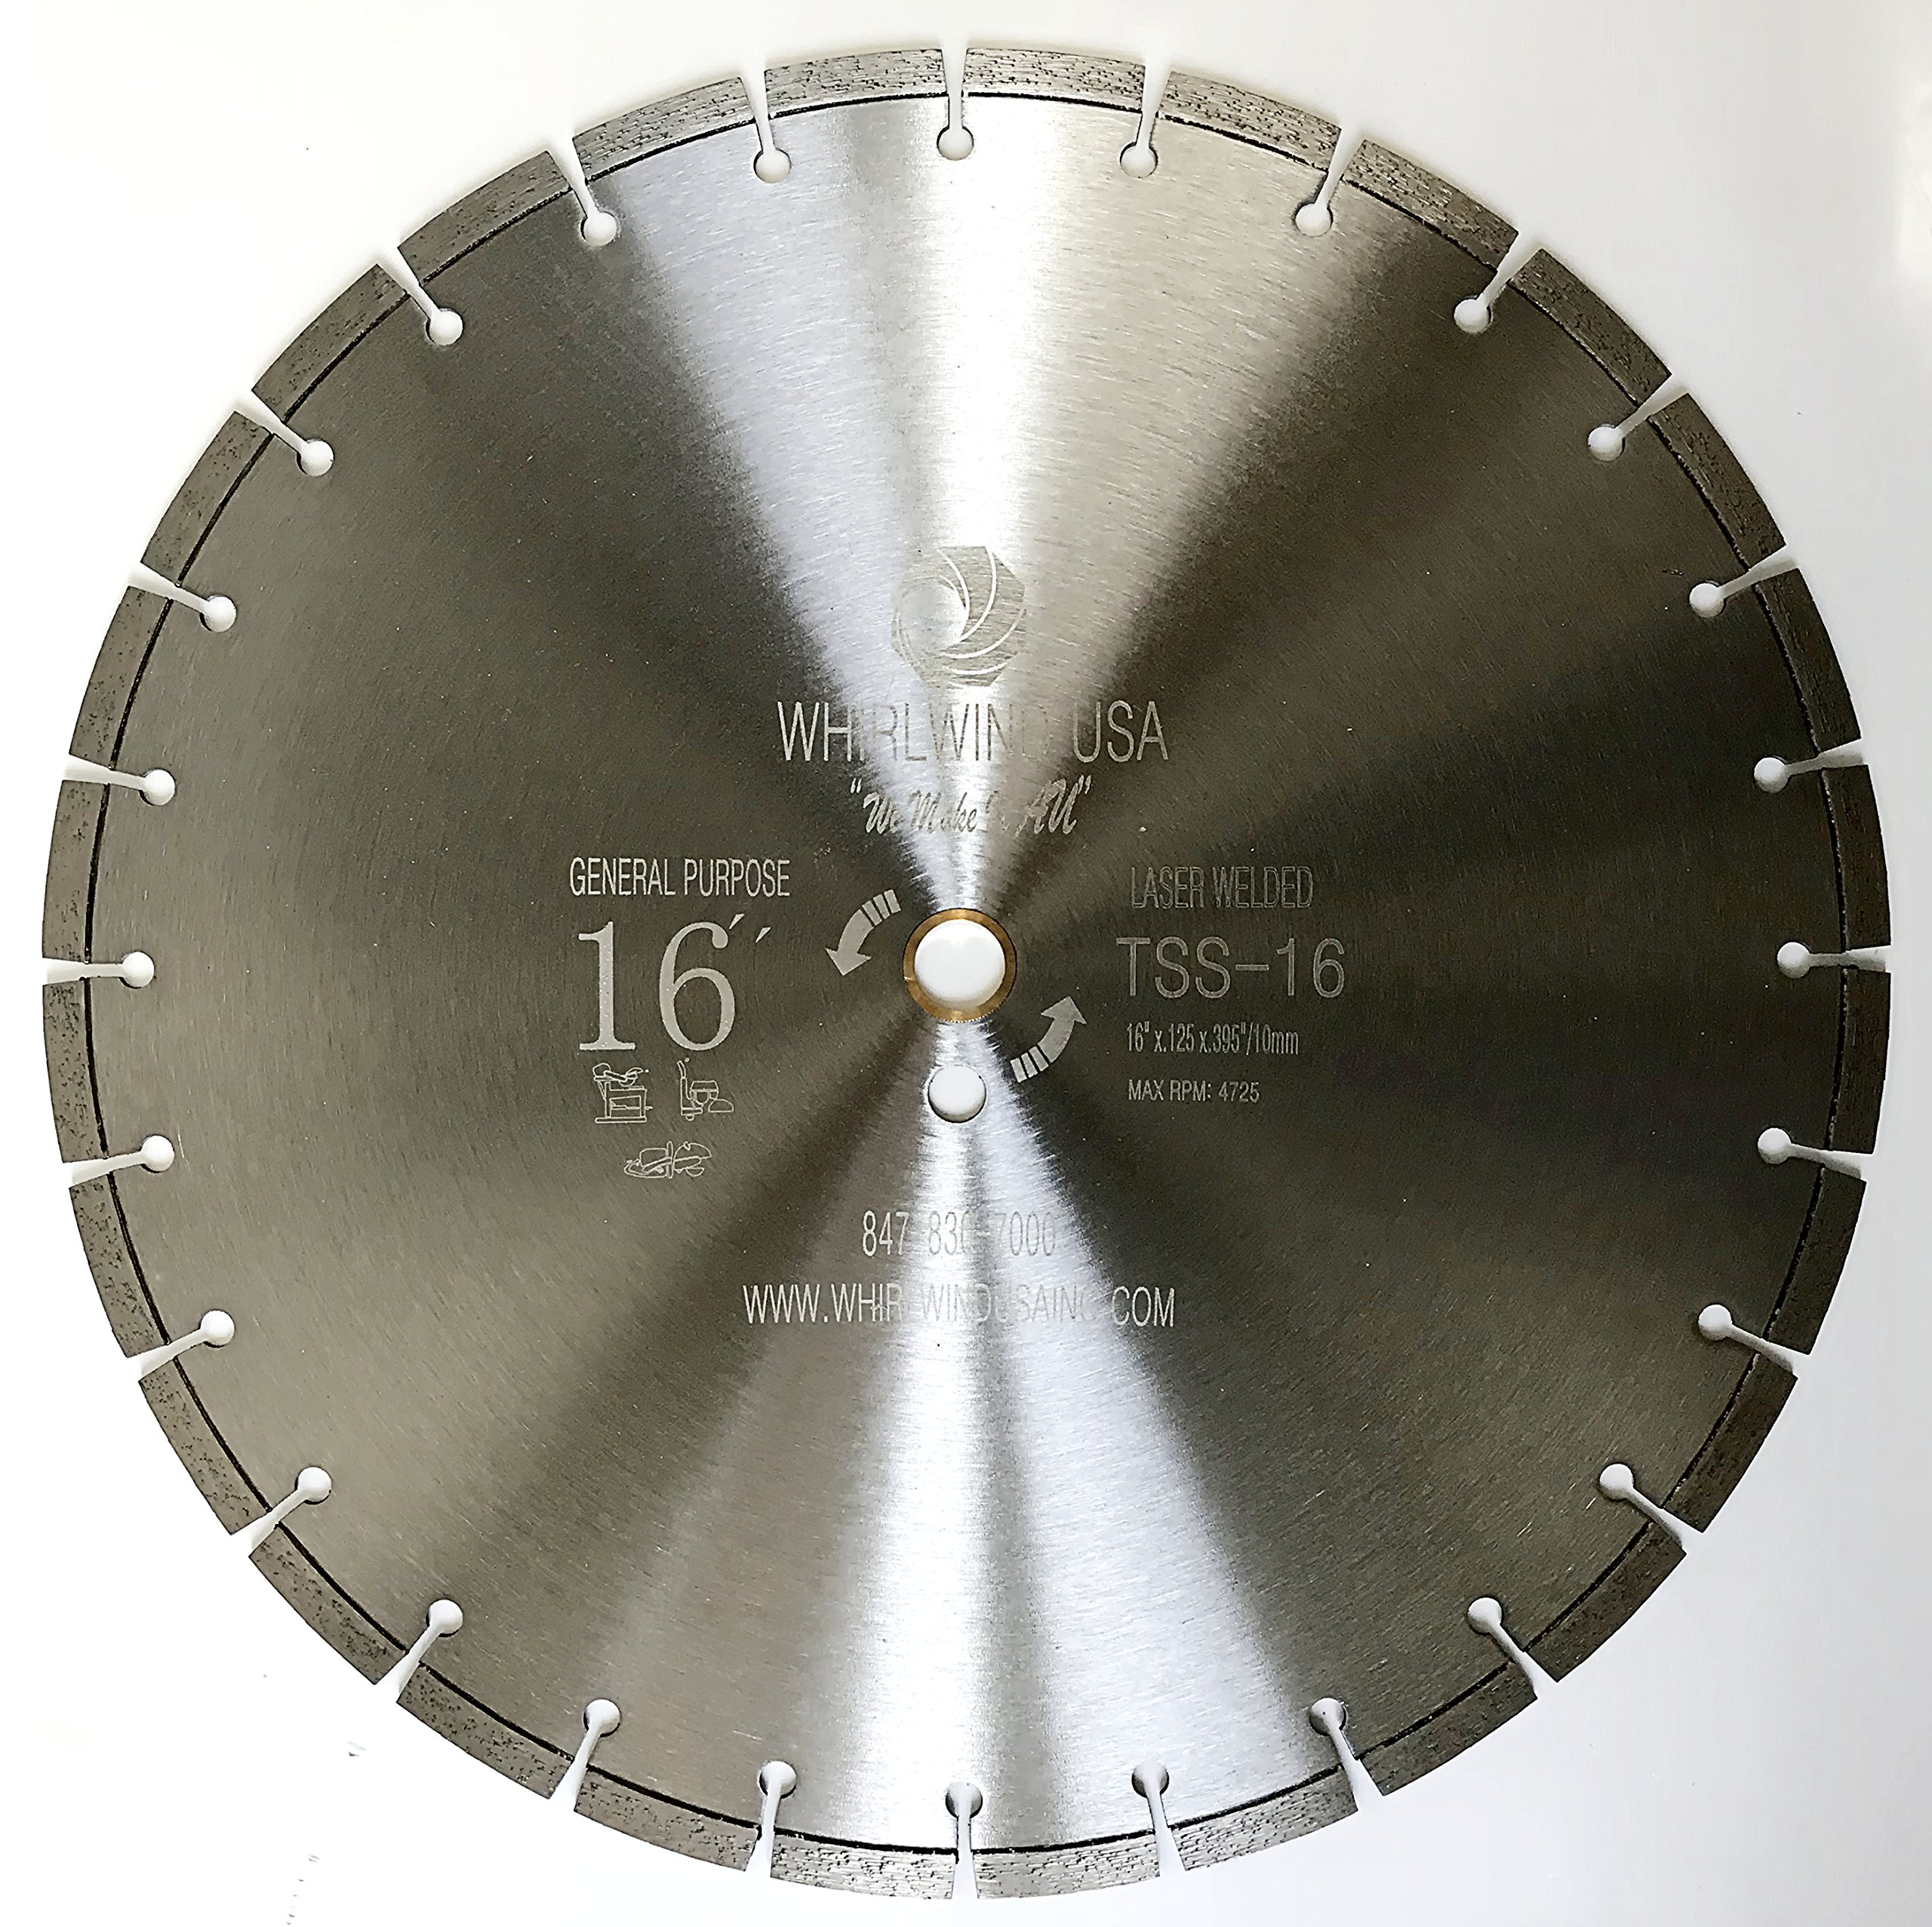 Whirlwind USA TSS 16 inch Laser Welded Dry or Wet General Purpose Standard Power Saw Segmented Diamond Blades (Factory Direct Sale) (16'')